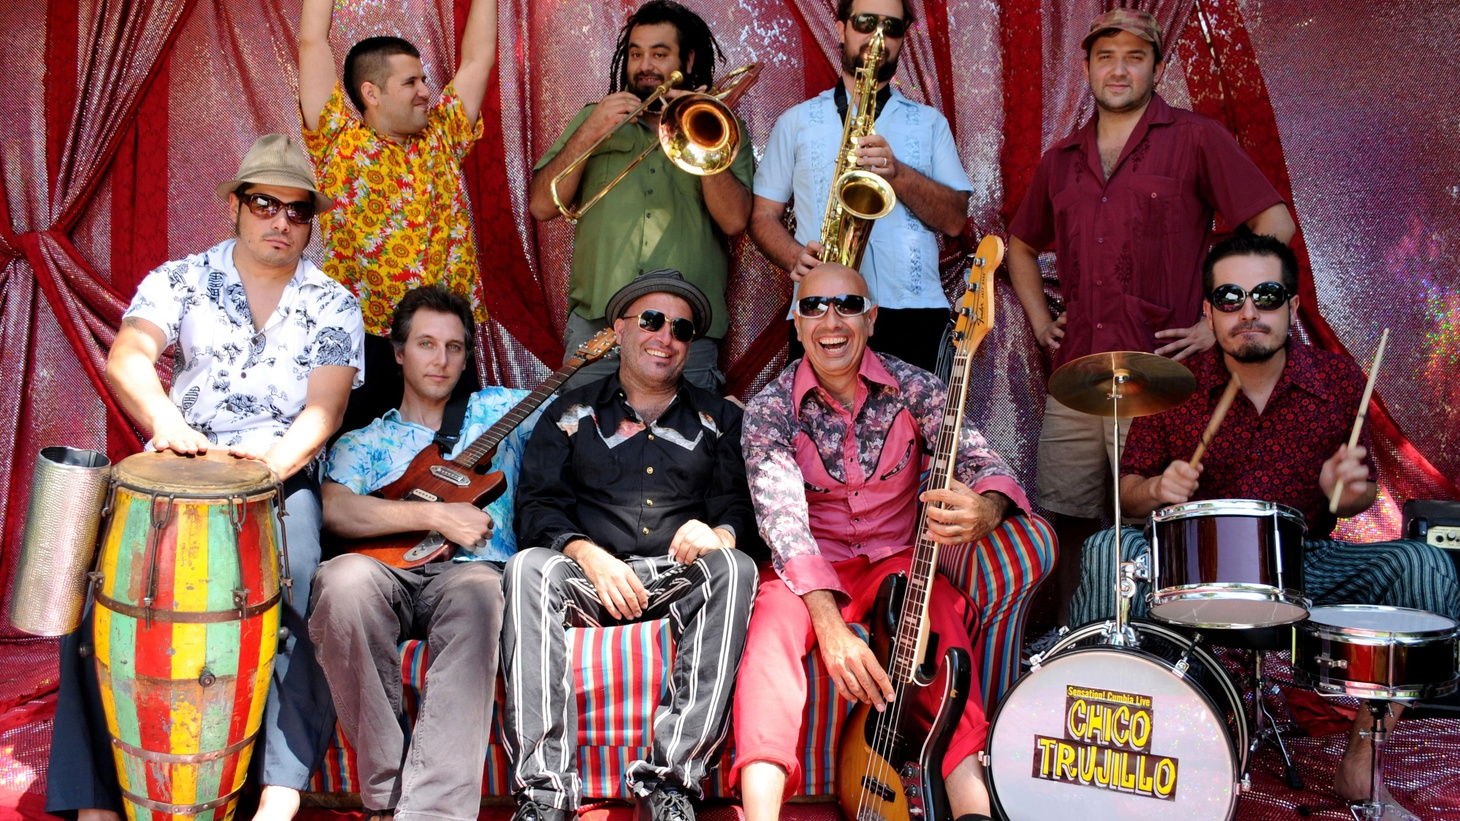 ...from Plato Único Bailable.   The tour manager for Brazilian artist Curumin handed me a CD by this Chilean band, Chico Trujillo. I immediately put it in my car player and noticed that the folks around me were bopping and smiling at me and giving the thumbs up...